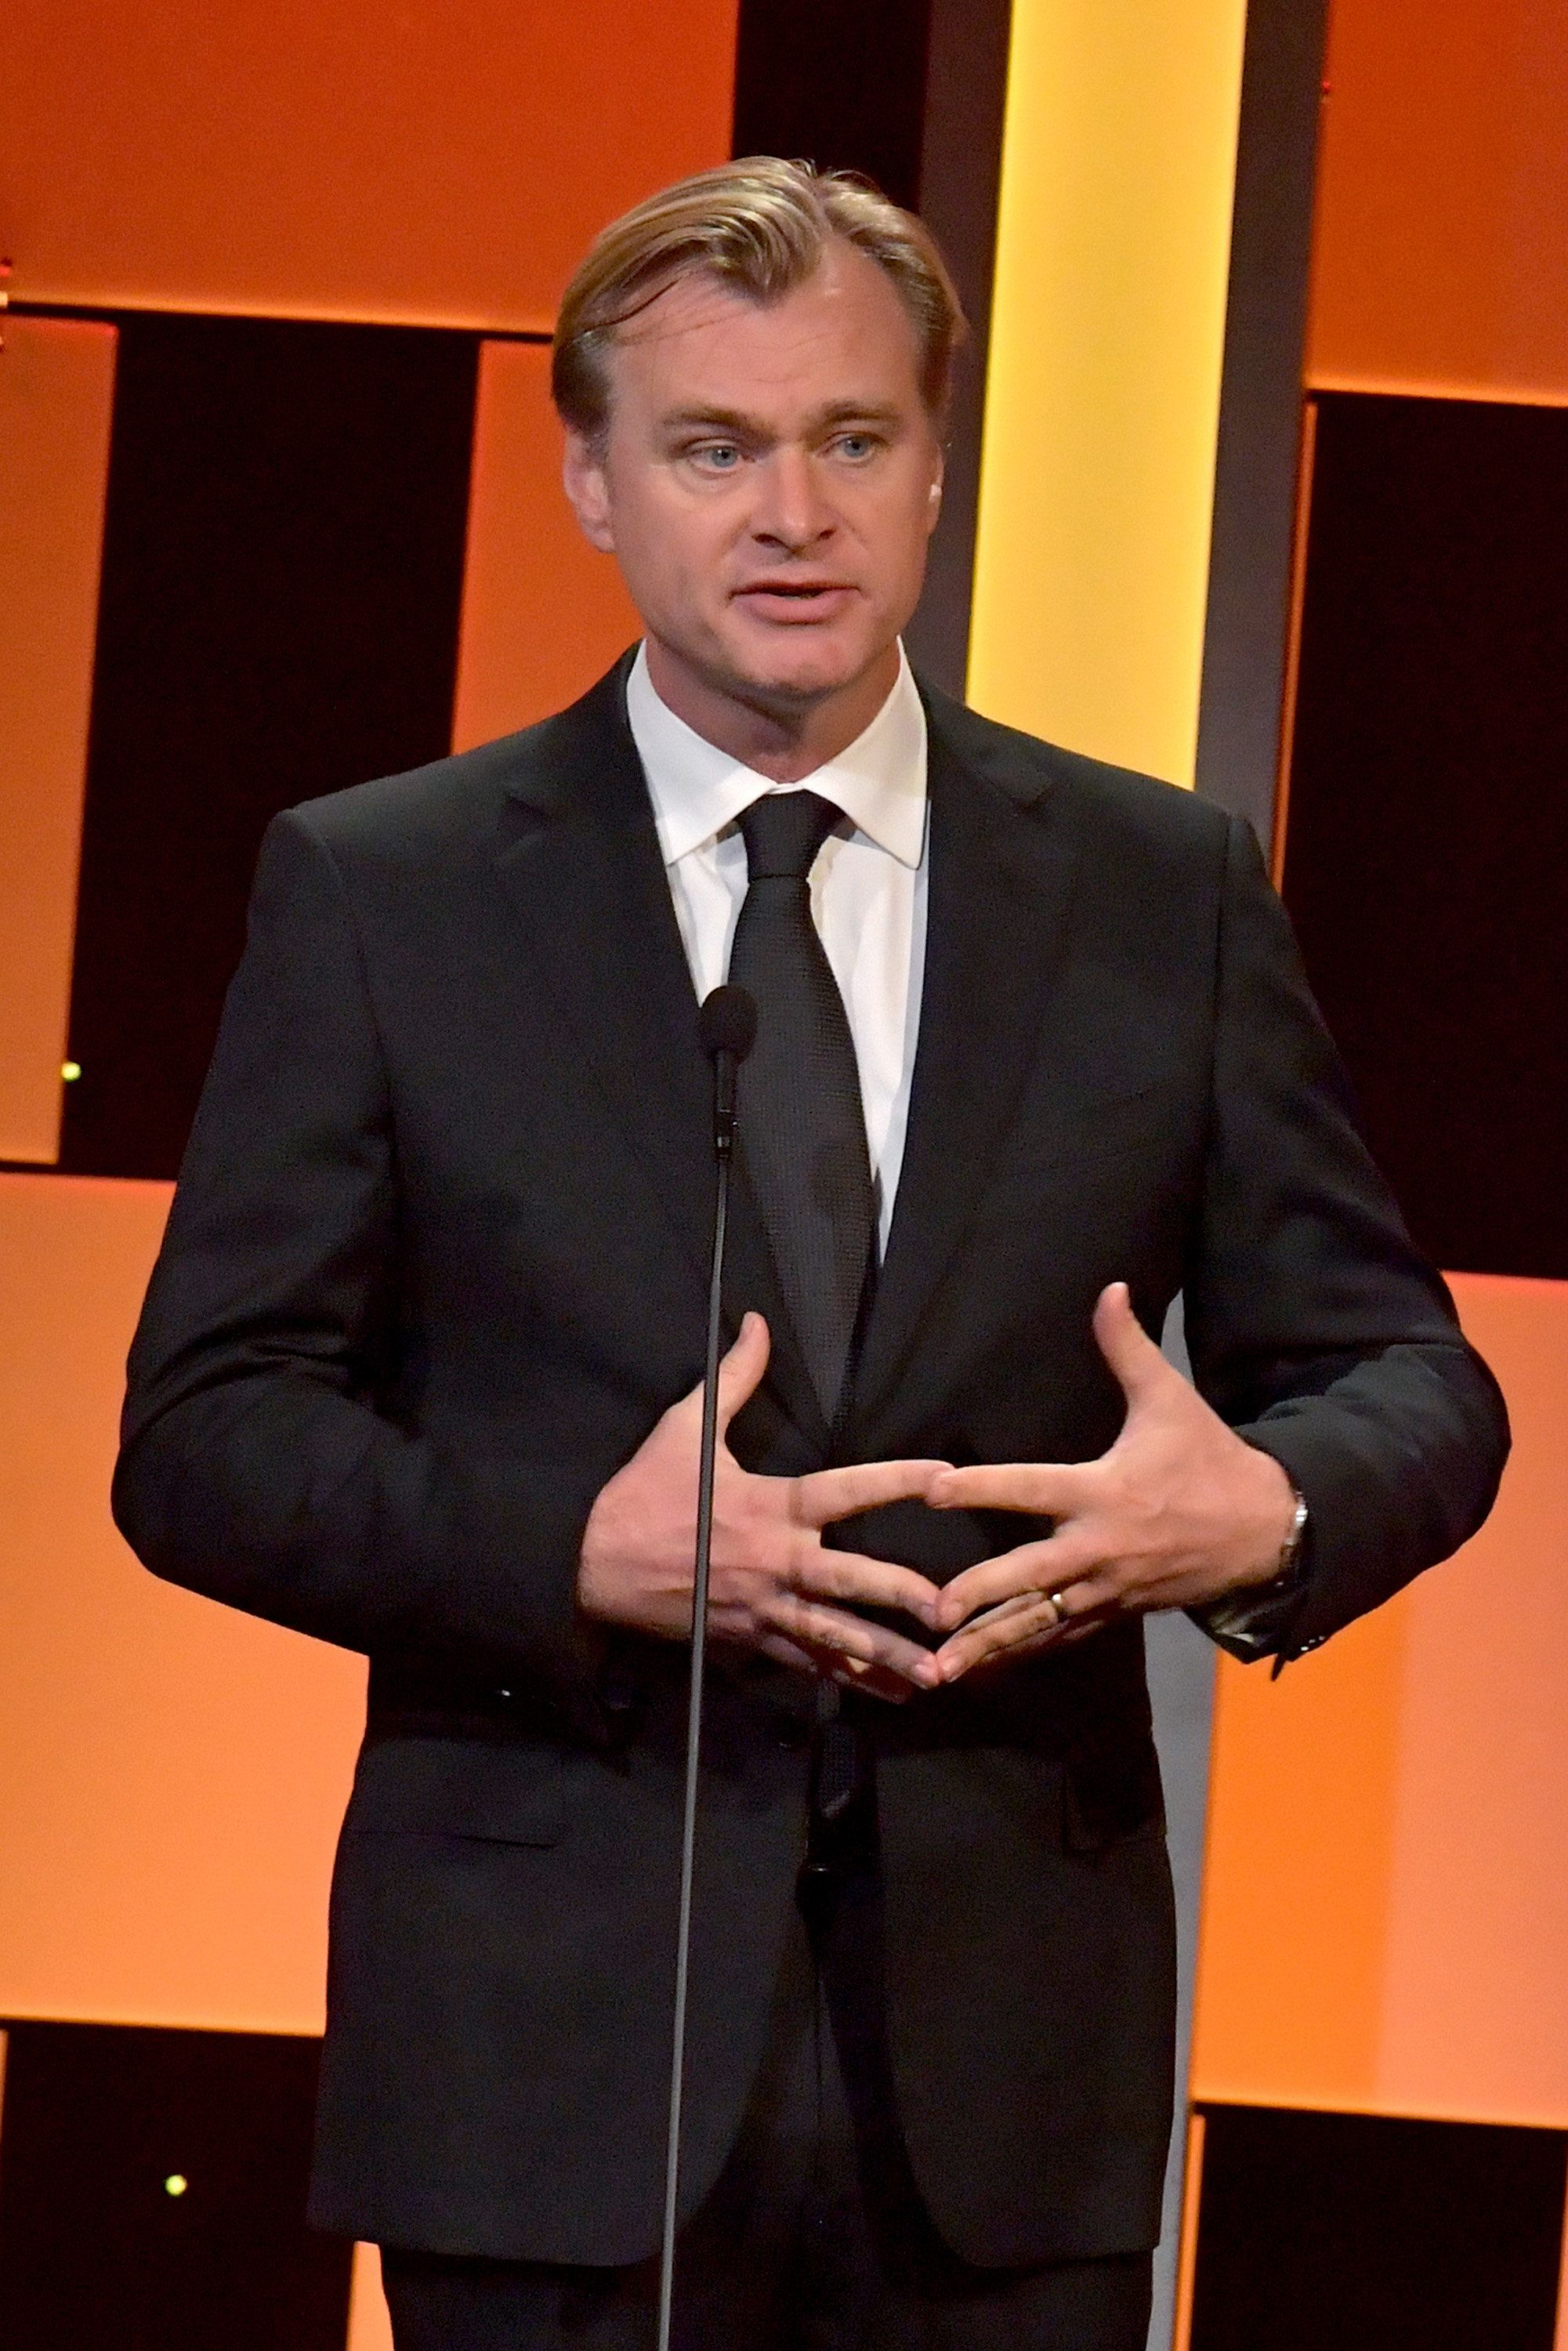 BEVERLY HILLS, CA - OCTOBER 14:  Director Christopher Nolan speaks onstage at the 30th Annual American Cinematheque Awards Gala at The Beverly Hilton Hotel on October 14, 2016 in Beverly Hills, California.  (Photo by Lester Cohen/WireImage)